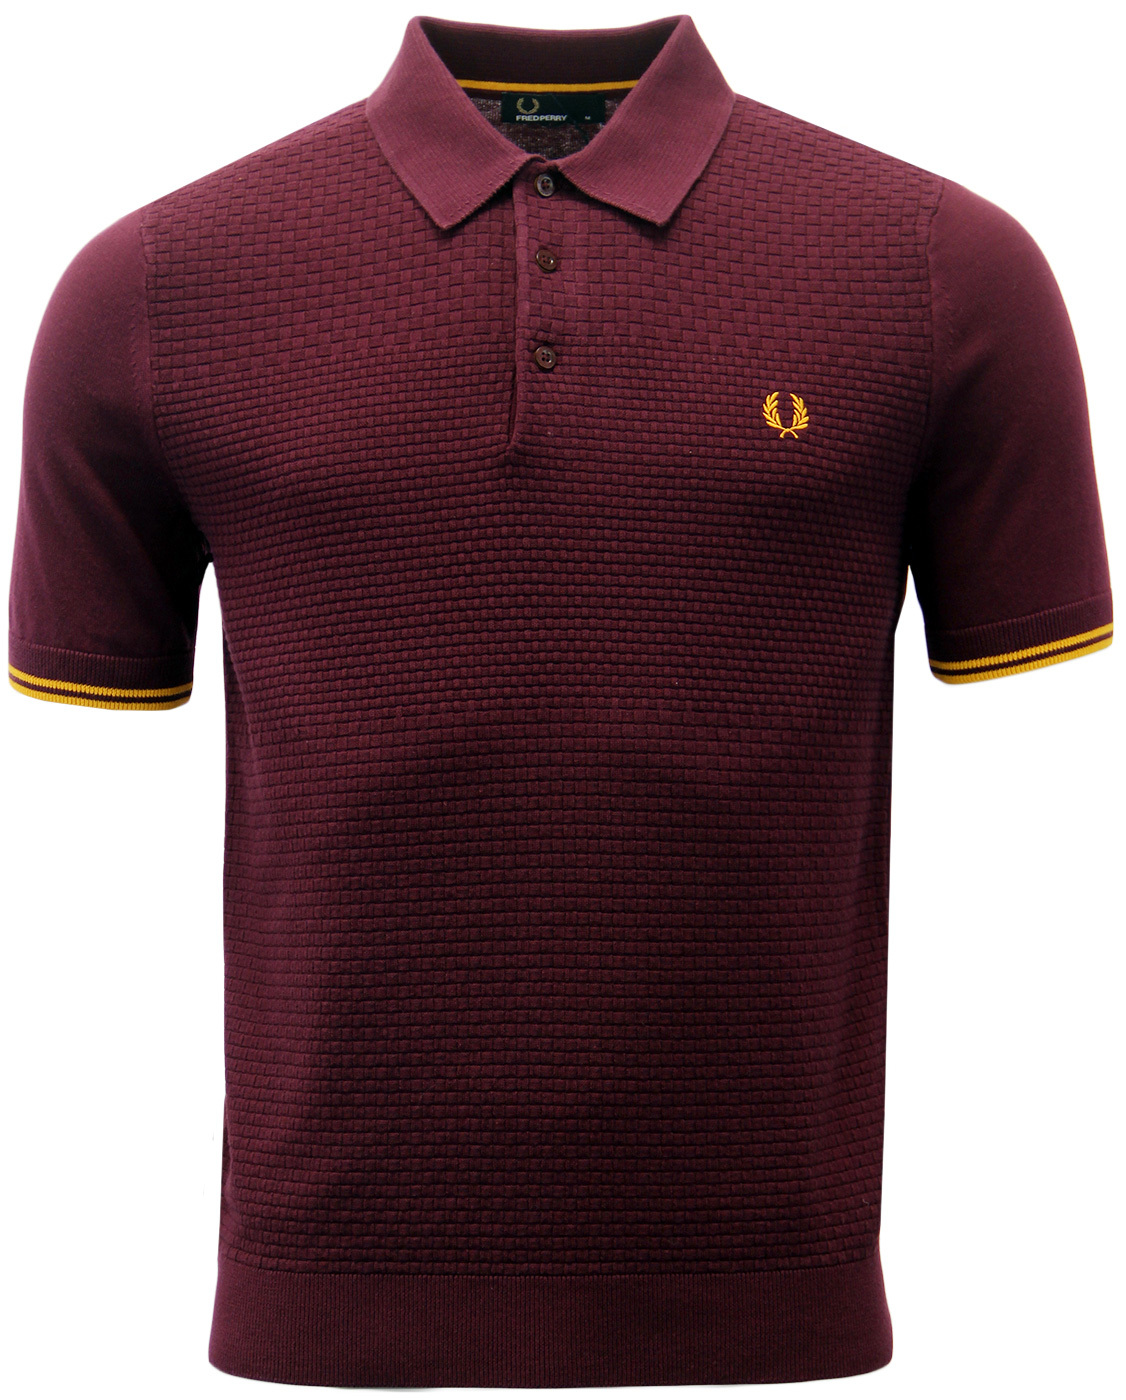 FRED PERRY Men's Retro Mod Knitted Polo Shirt M